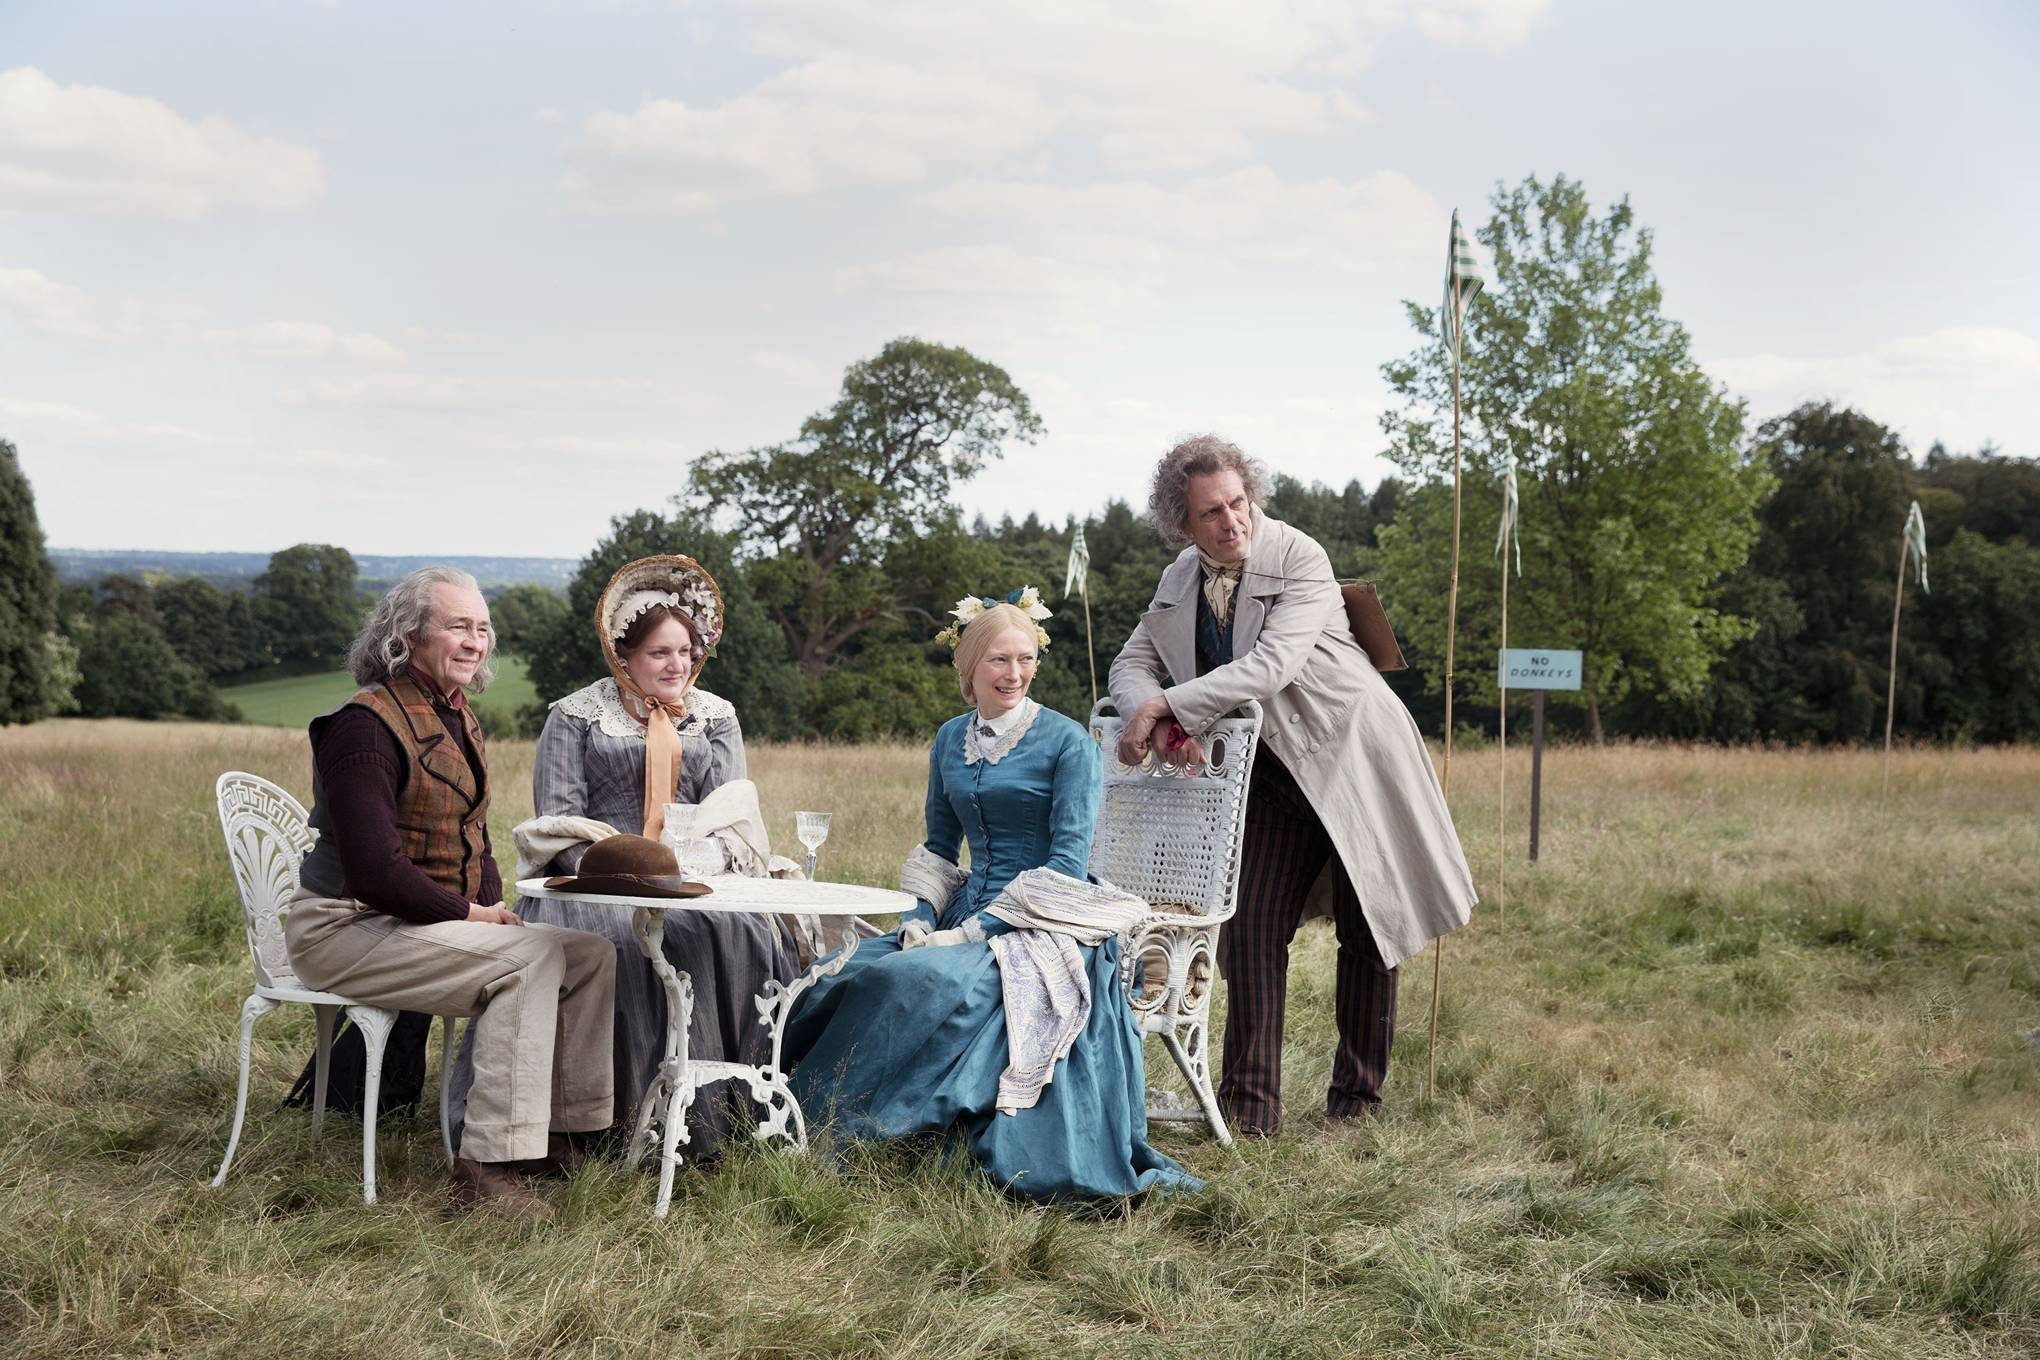 From left: Paul Whitehouse, Daisy May Cooper, Tilda Swinton and Peter Capaldi are seen in Victorian clothes in the movie.